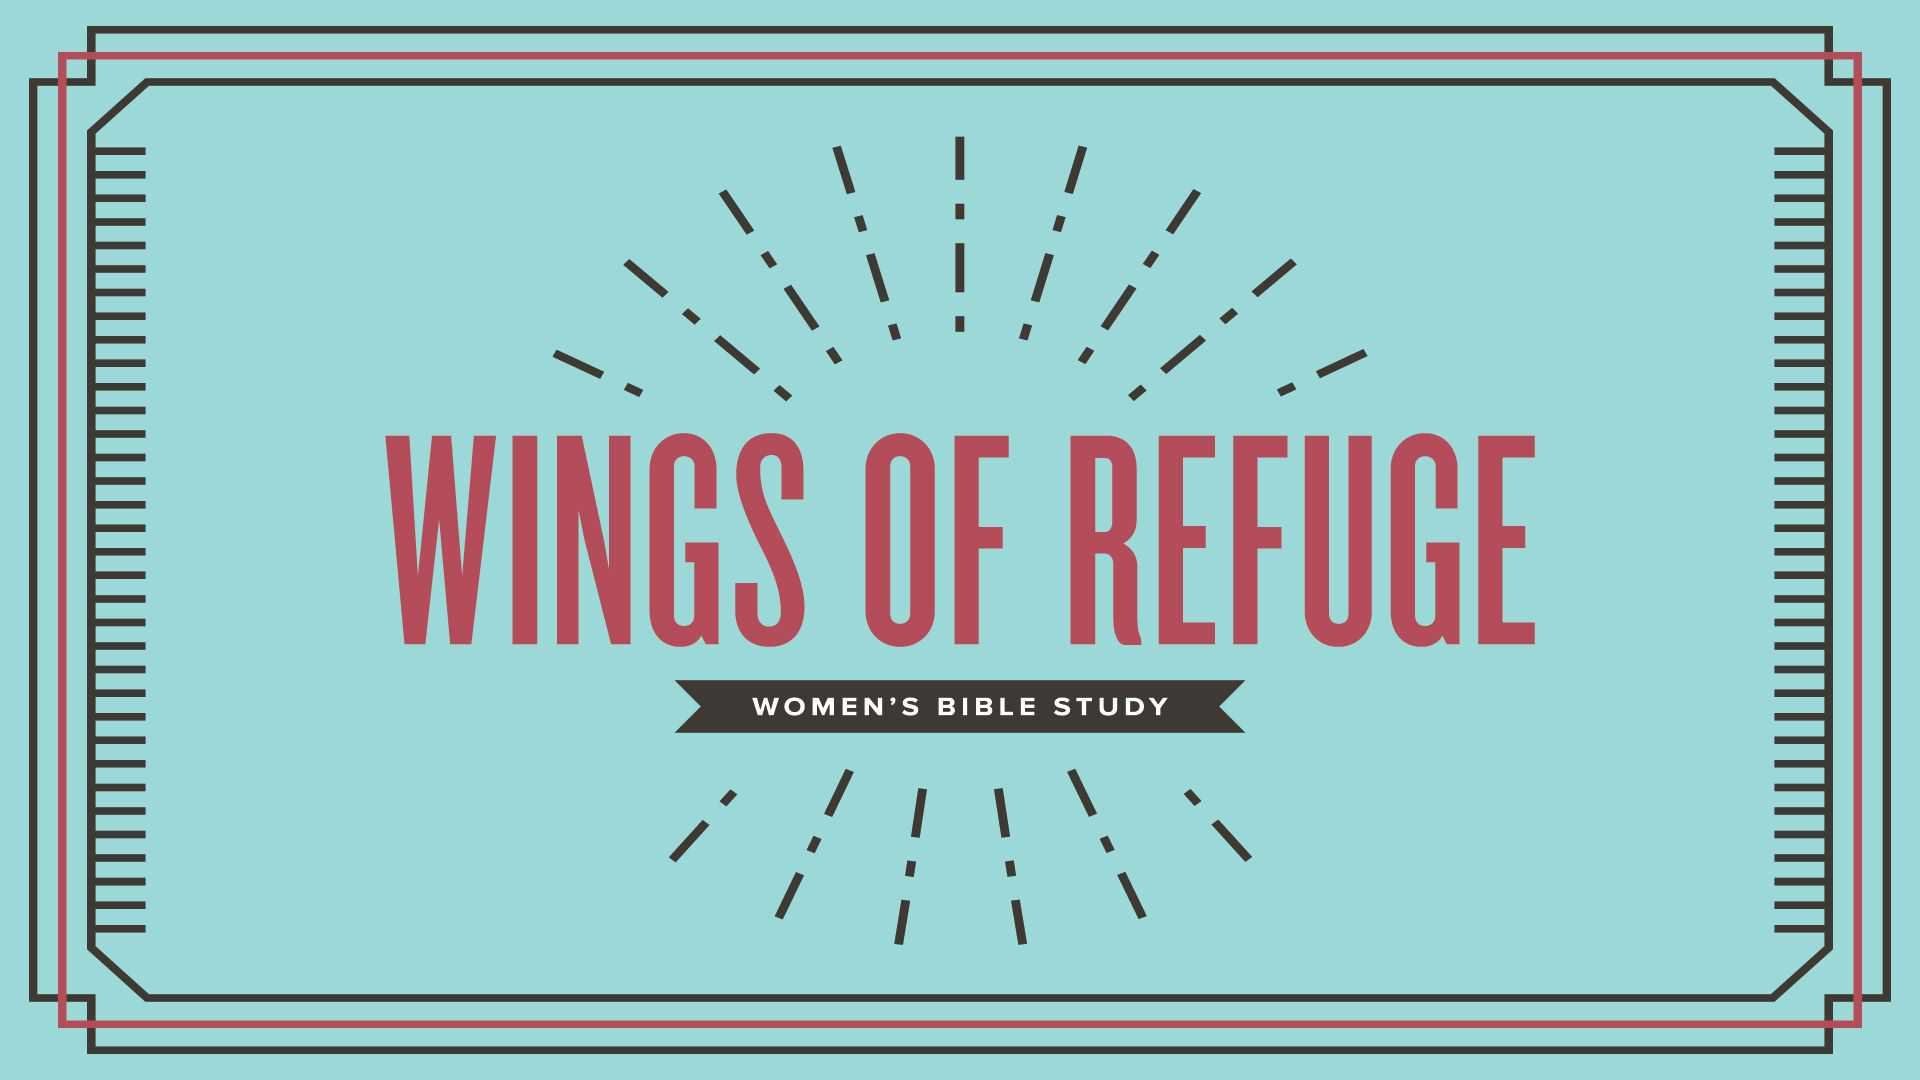 Poster forWings of Refuge - An Overview of Ruth